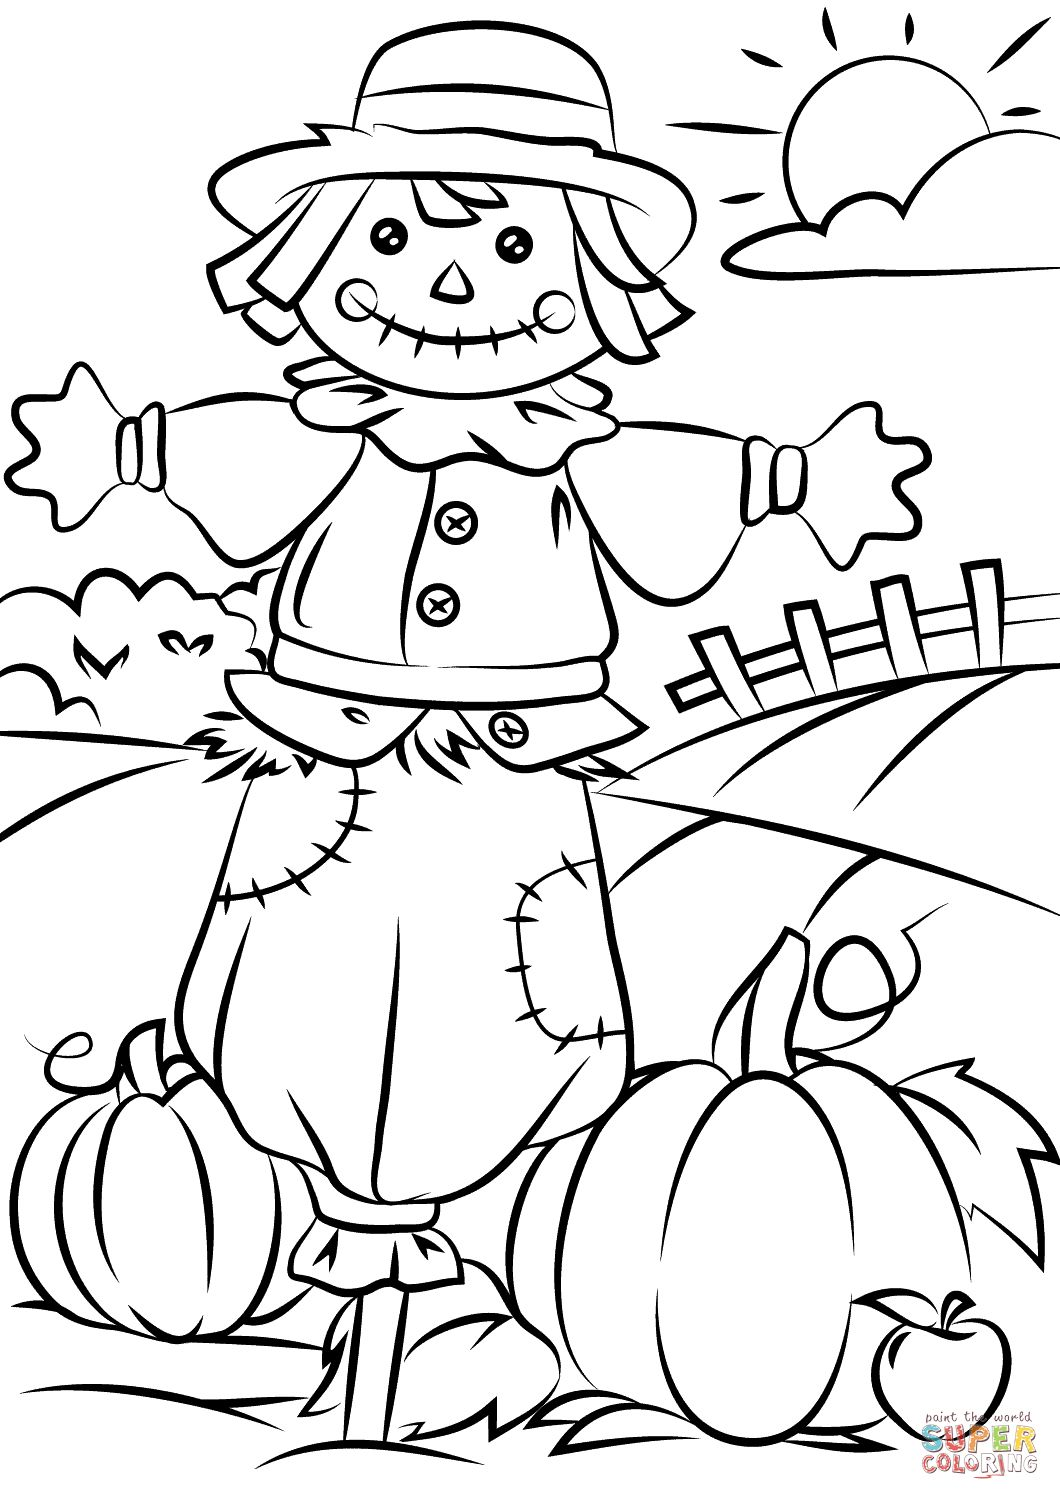 14+ Printable fall coloring pages info